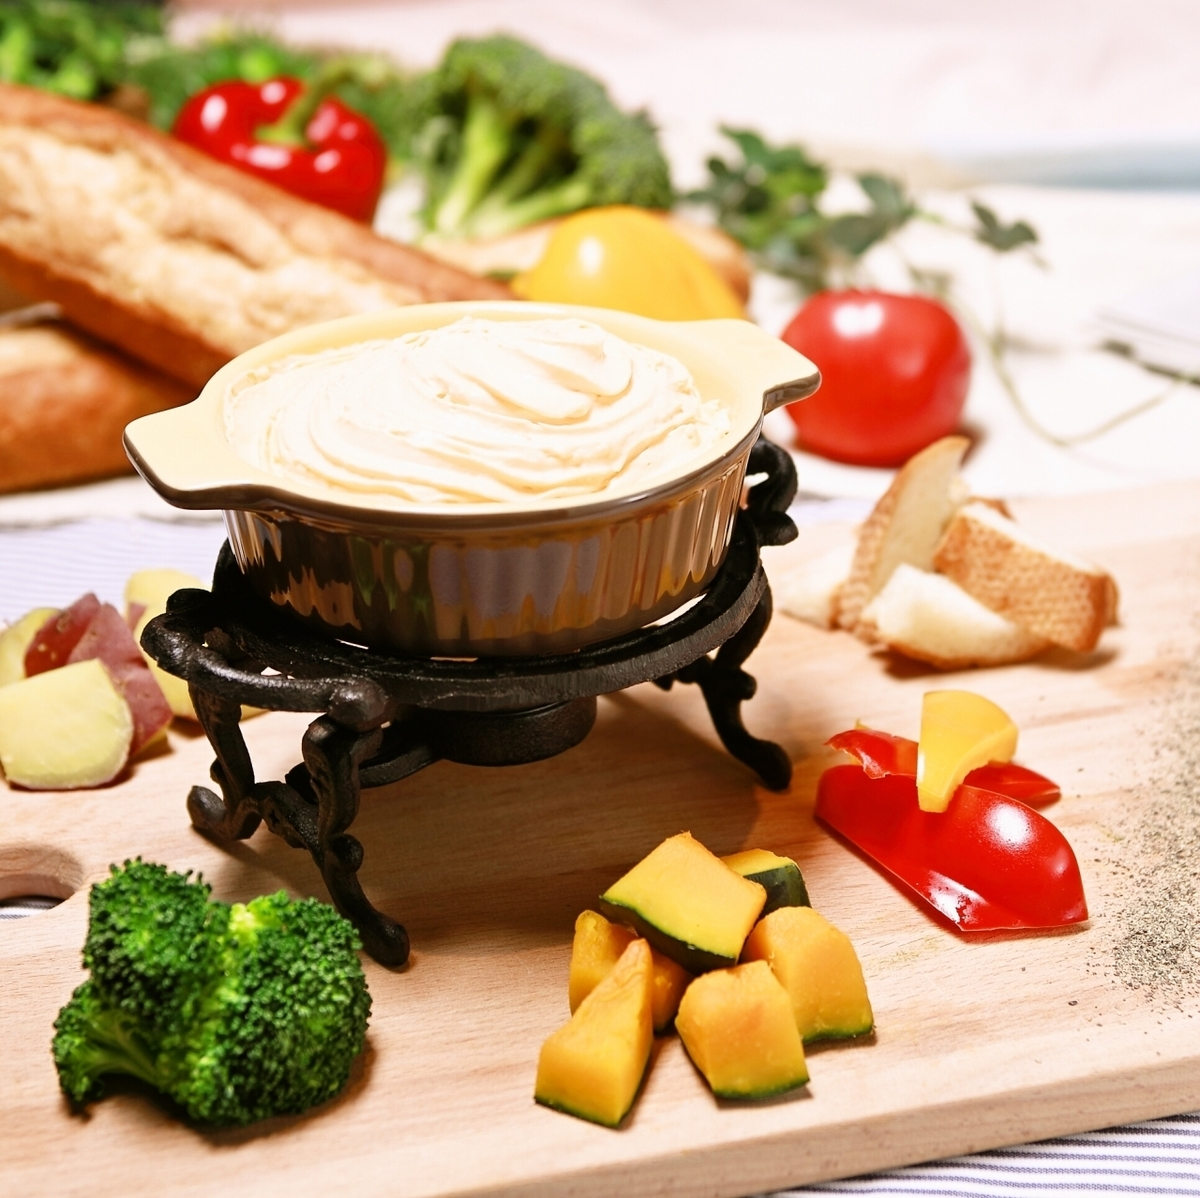 Rich vegetables and rich cheese fondue of fluffy cream ♪